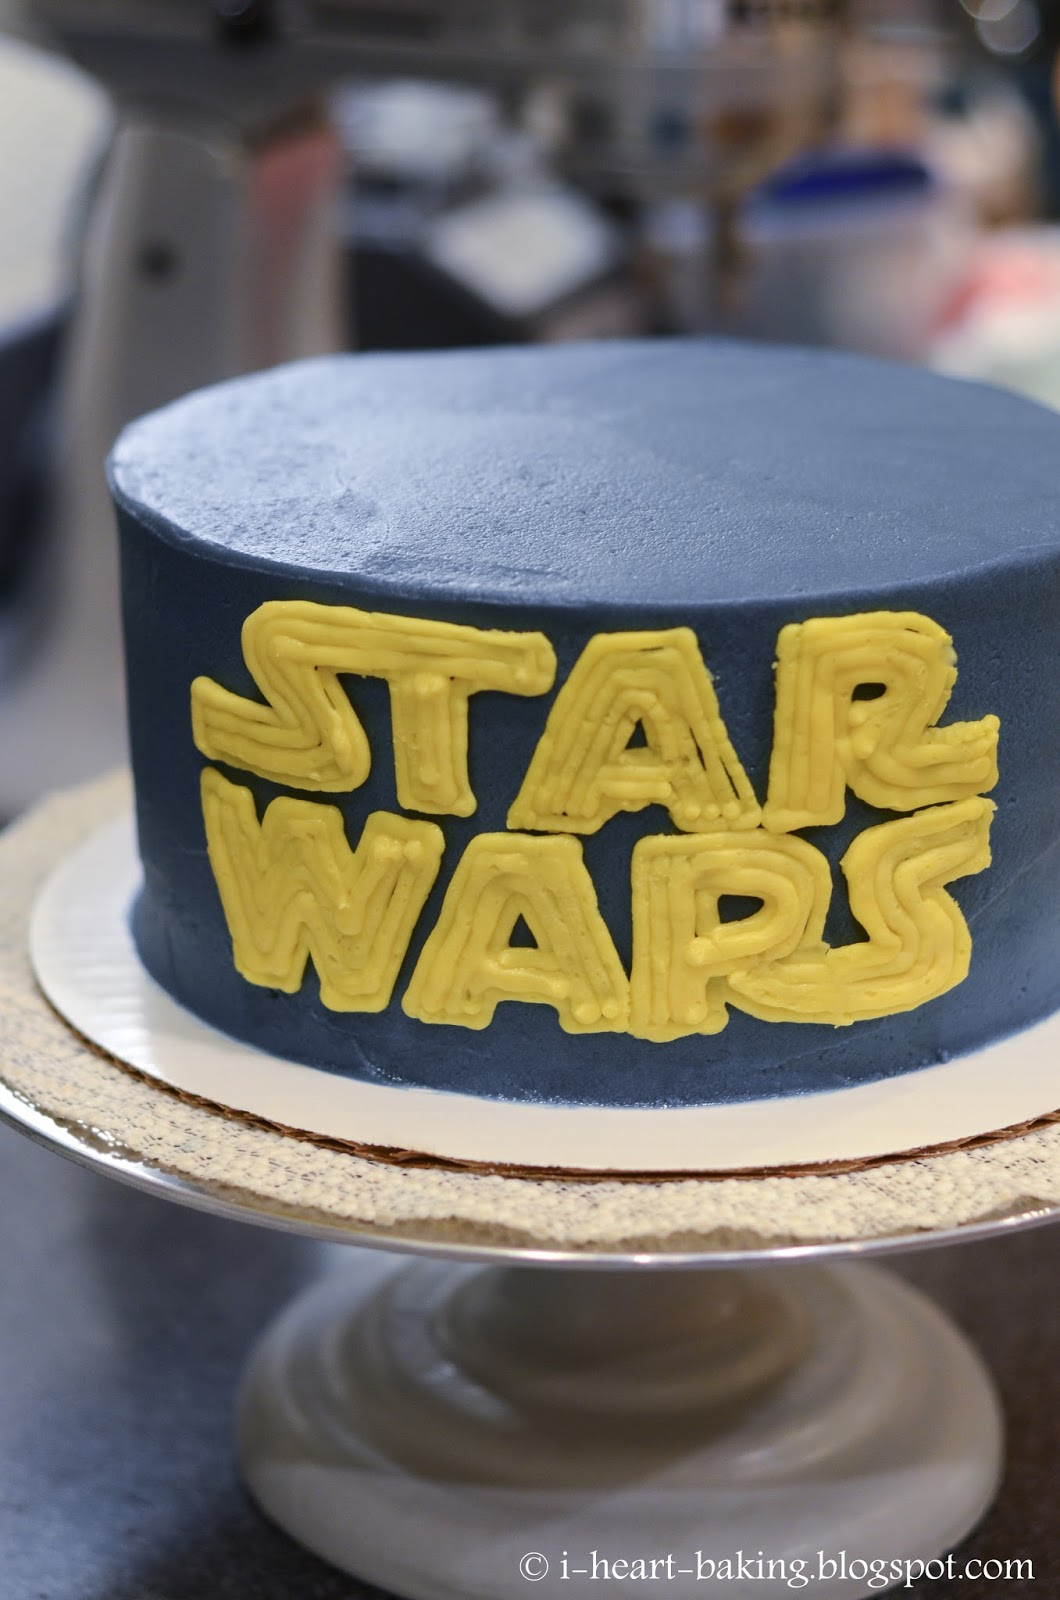 Images Of A Star Wars Cake : i heart baking!: star wars cake with handmade chocolate ...